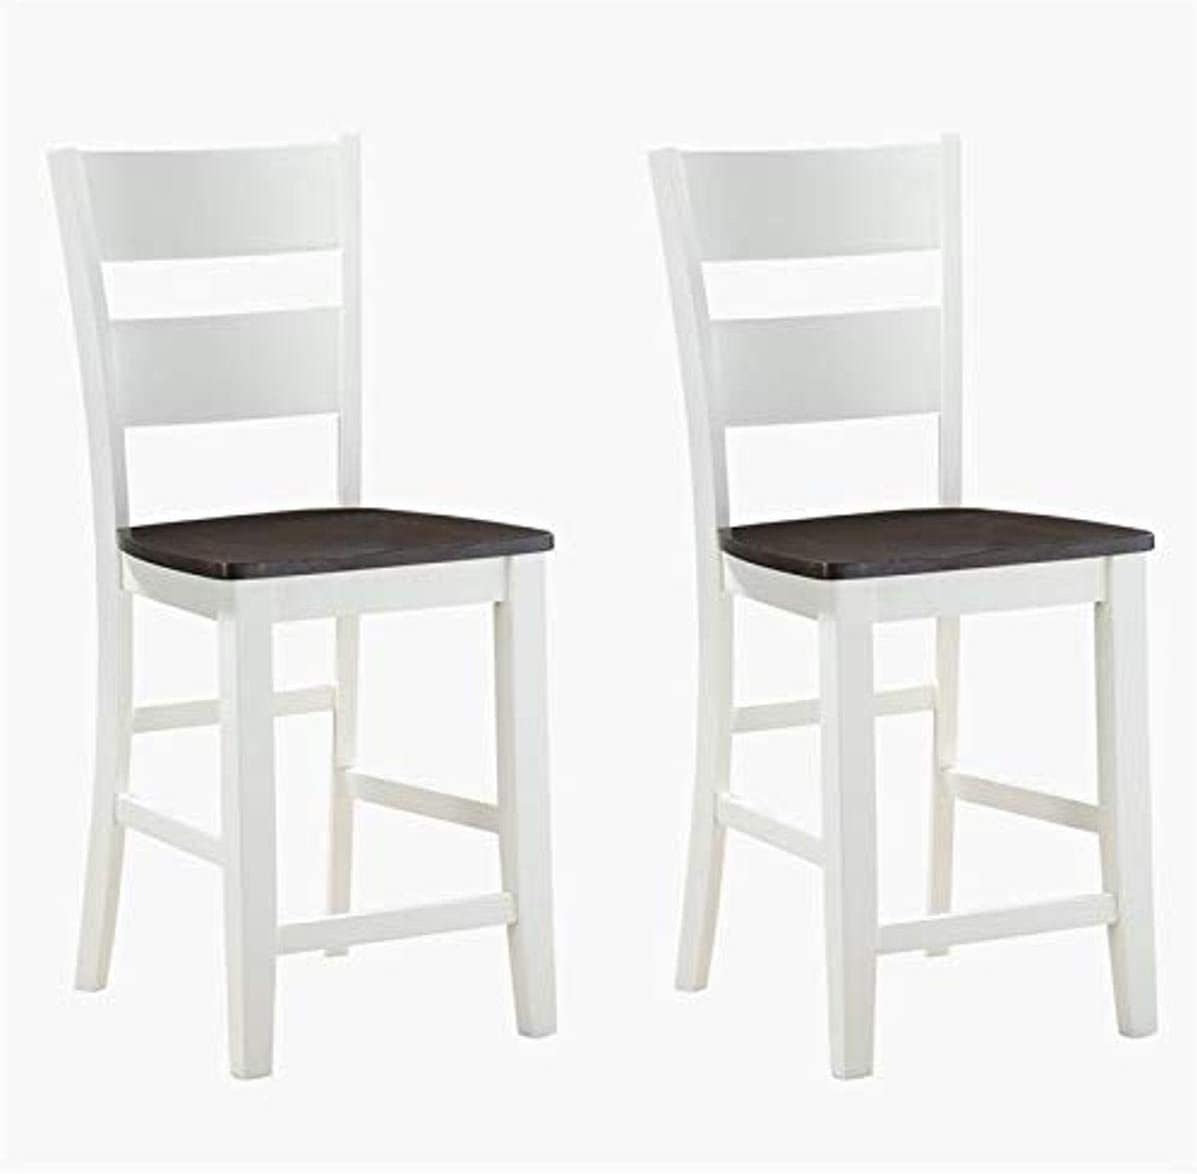 Wallace Bay Mccarty 24 Bar Stool With Solid Wood Seats Set Of Two Furniture Decor